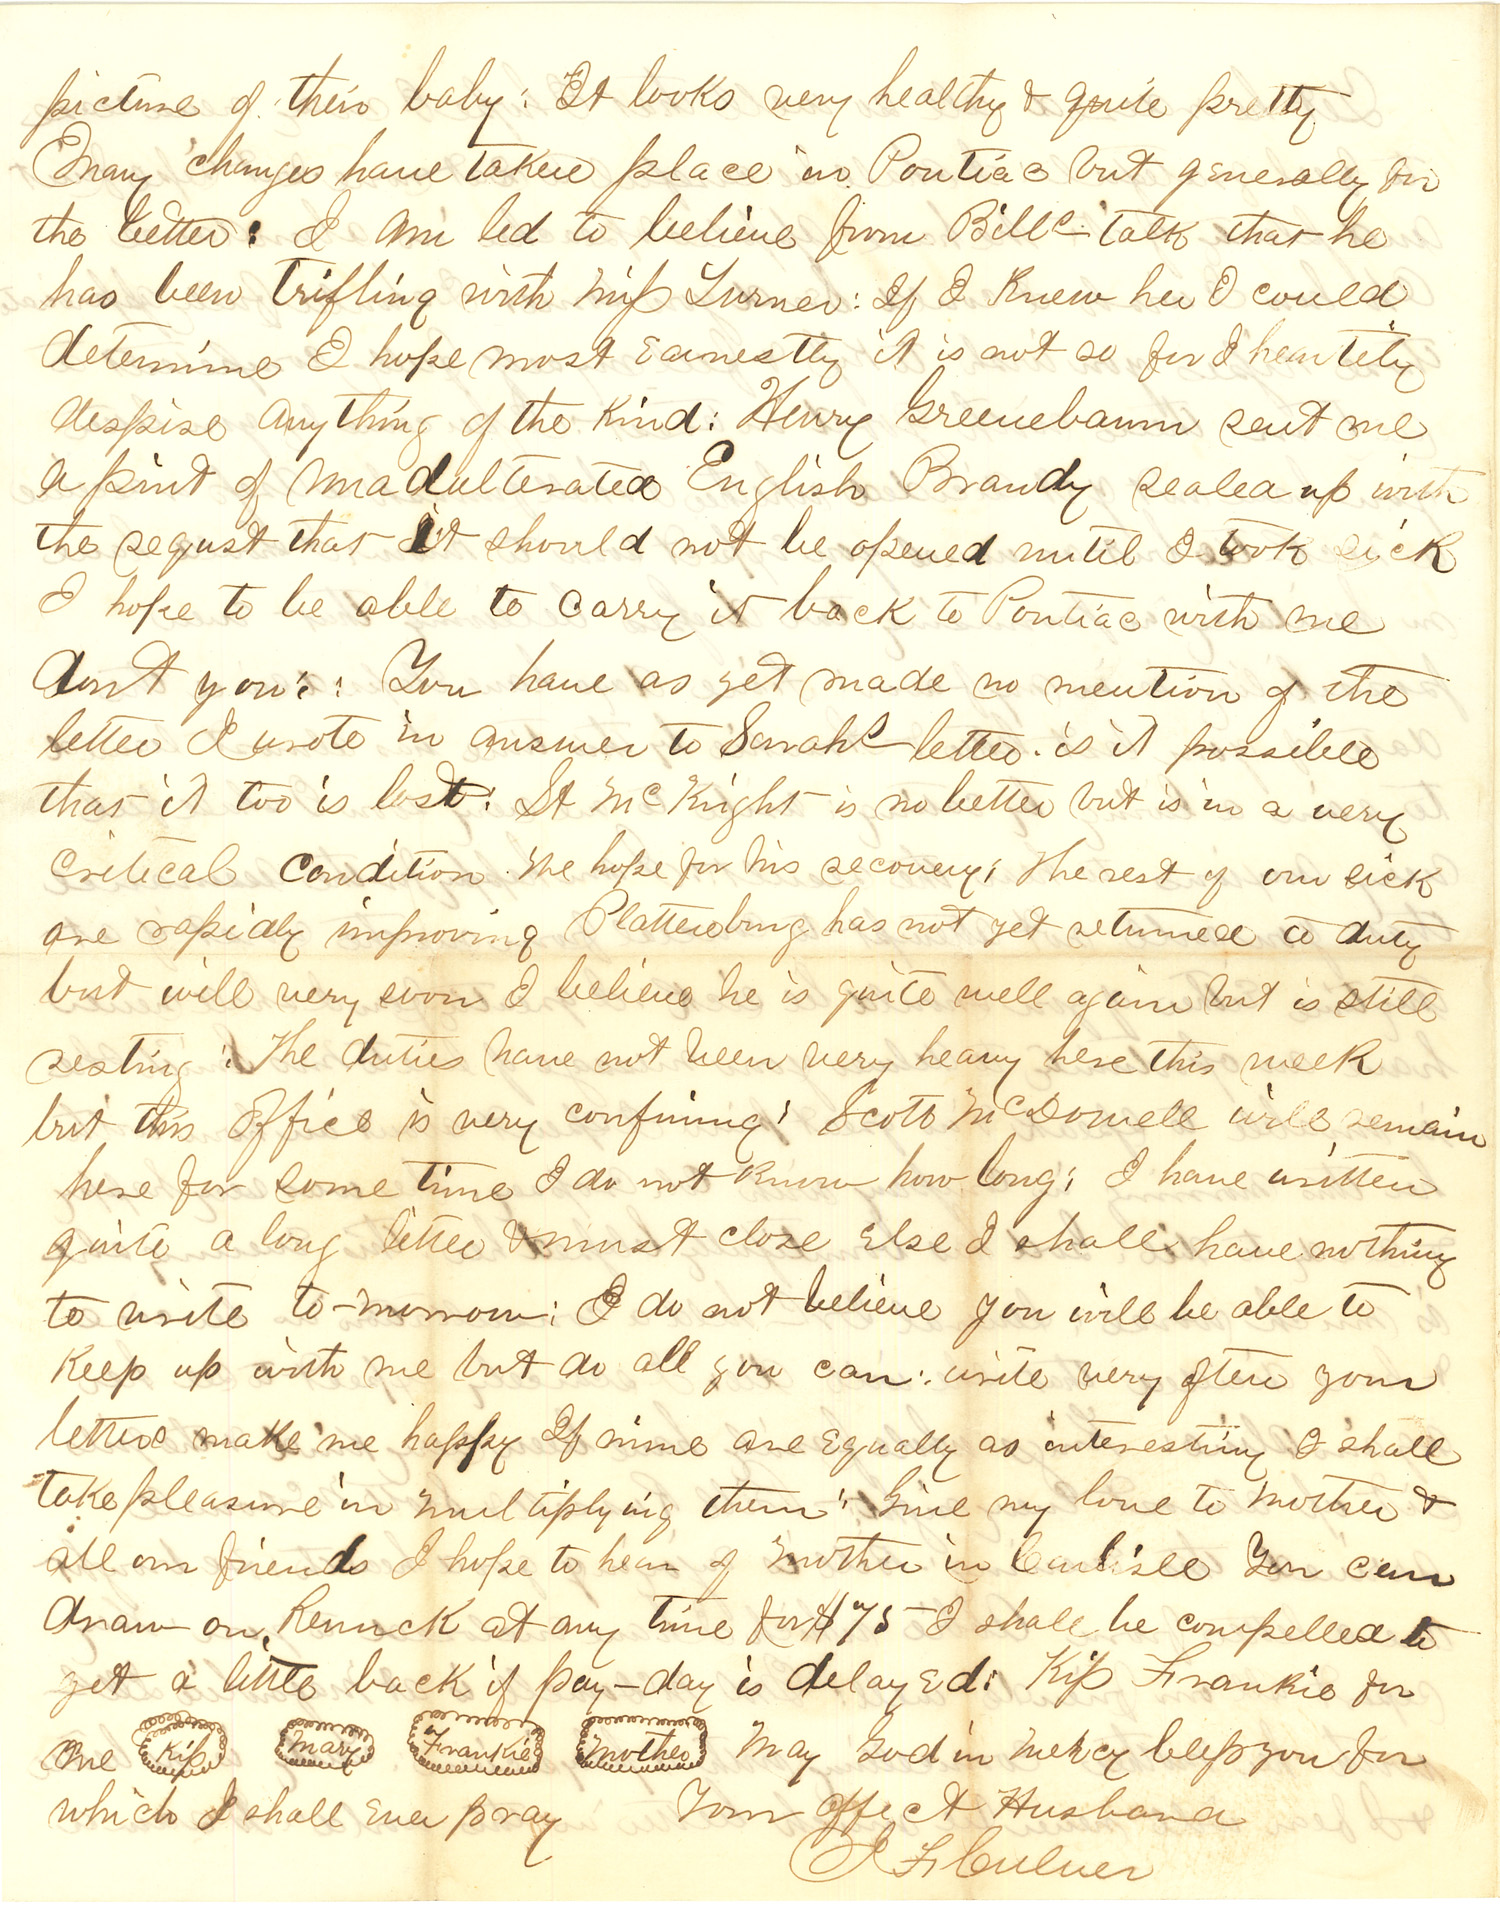 Joseph Culver Letter, August 14, 1863, Letter 2, Page 4